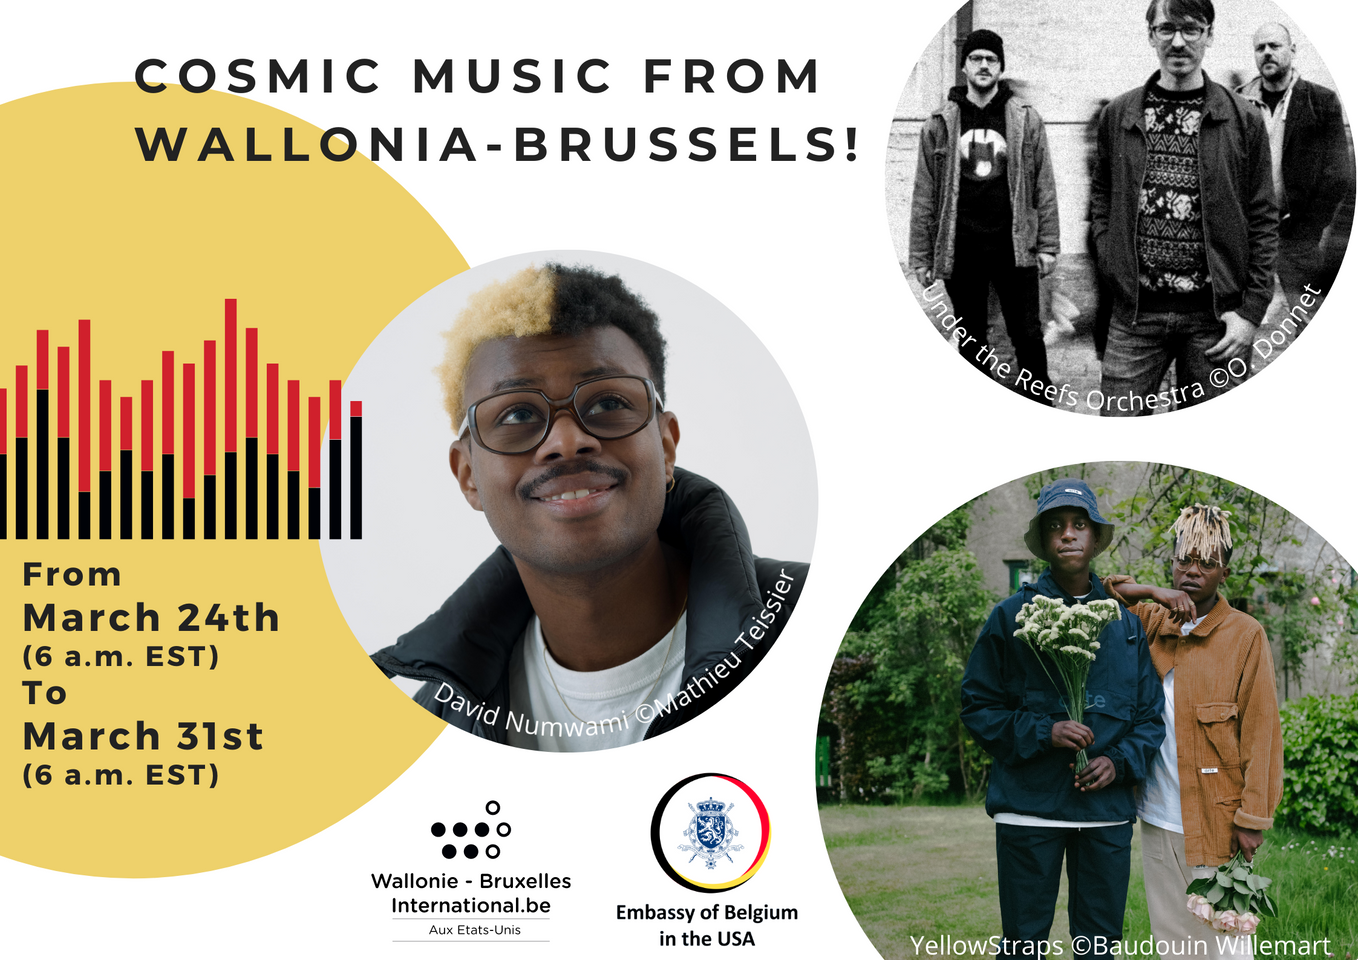 Cosmic Music from Wallonia-Brussels